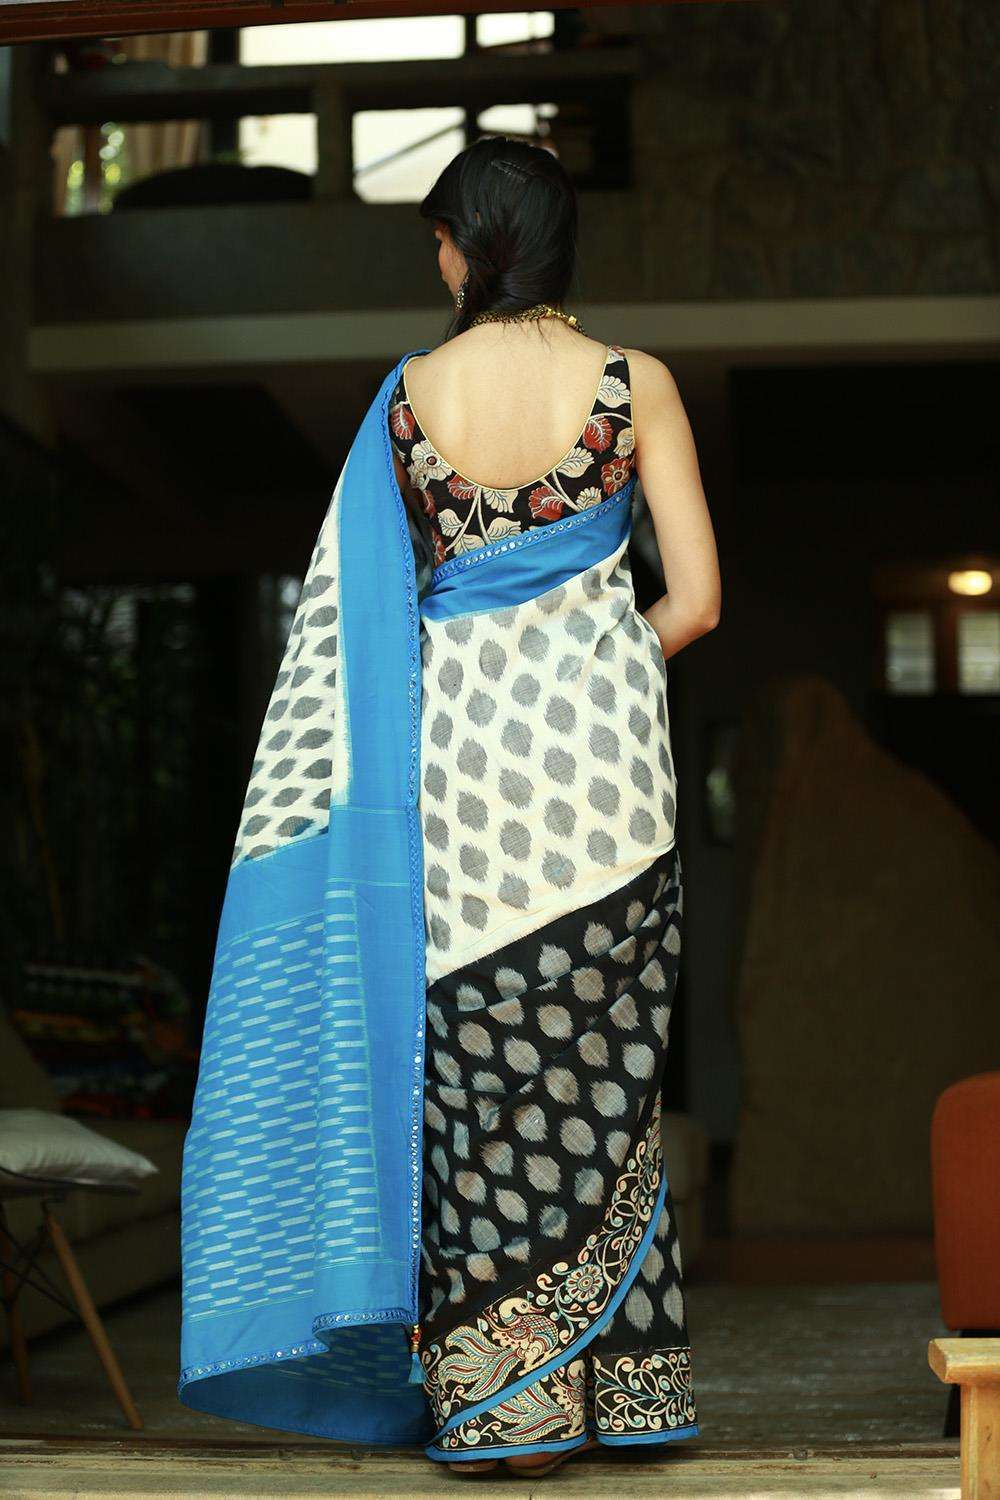 White, black and grey Ikat handloom cotton saree with Kalamkari border - House of Blouse